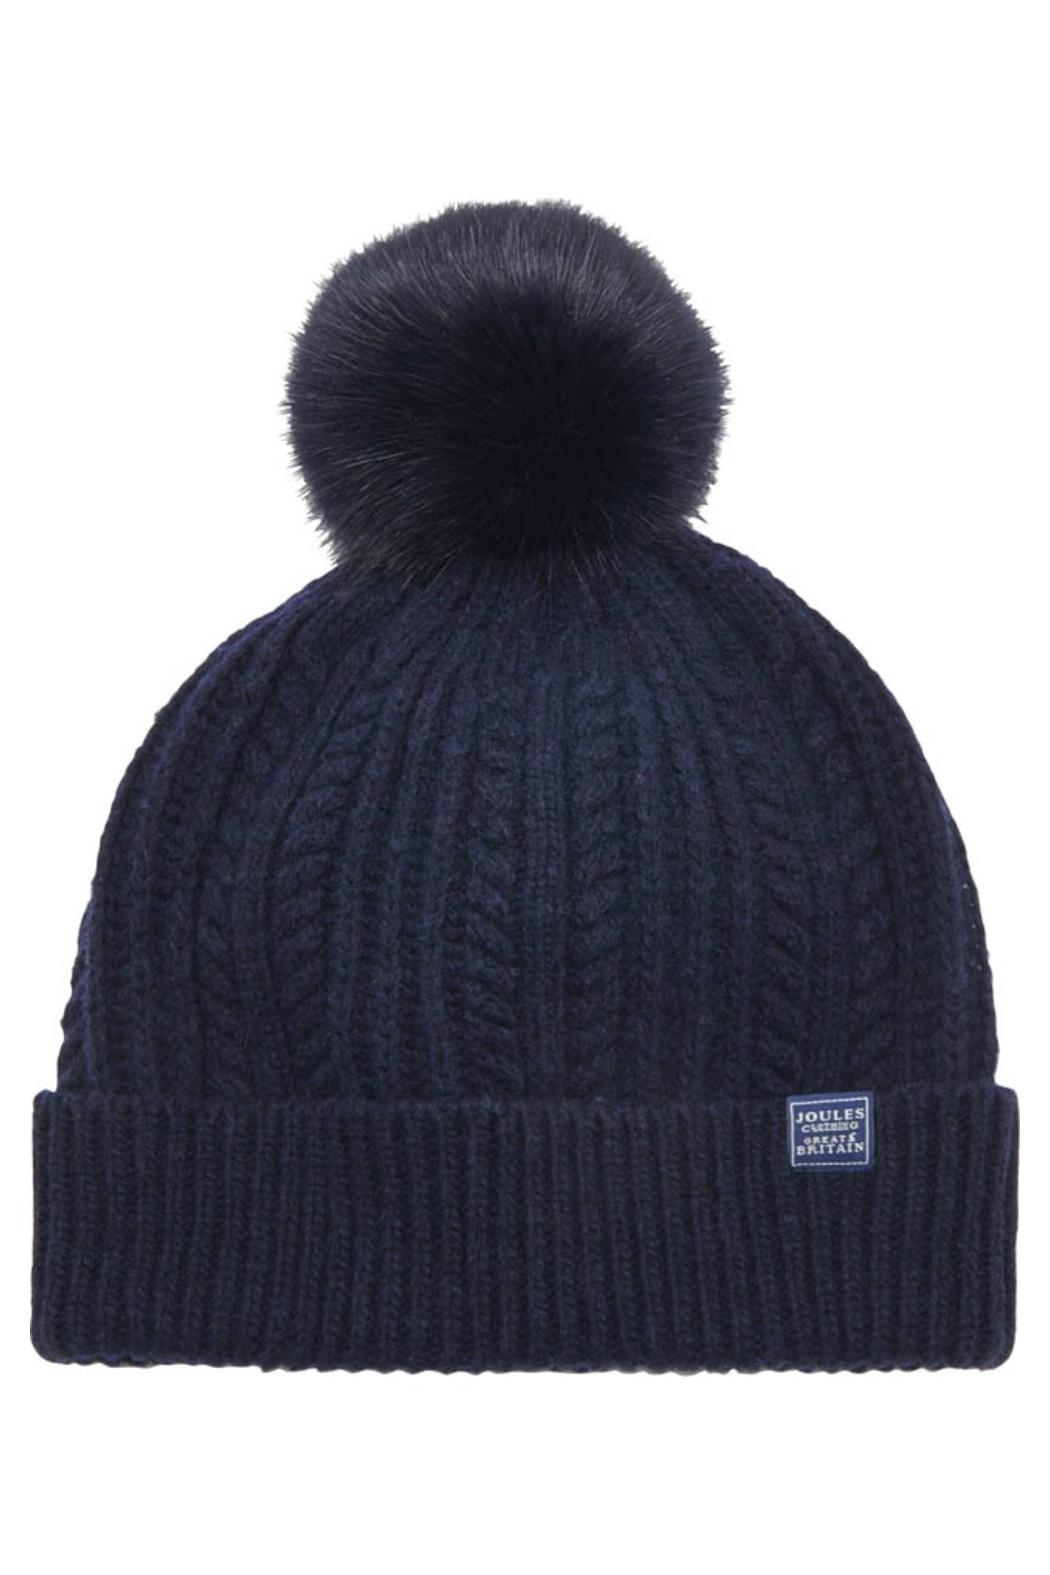 Joules Bobble Knitted Hat - Main Image